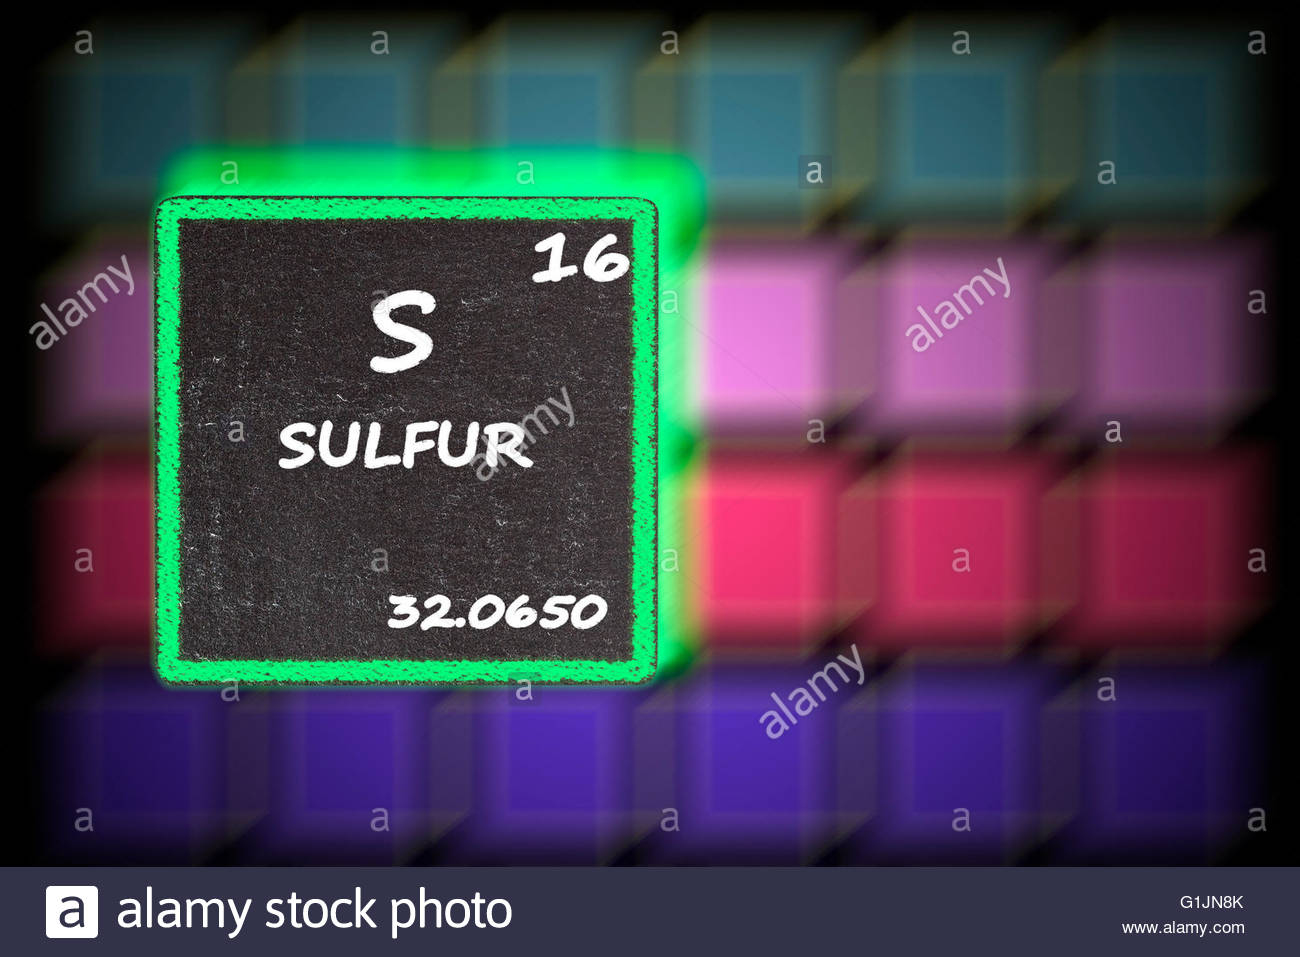 Atomic number 16 stock photos atomic number 16 stock images alamy sulfur details from the periodic table stock image urtaz Gallery